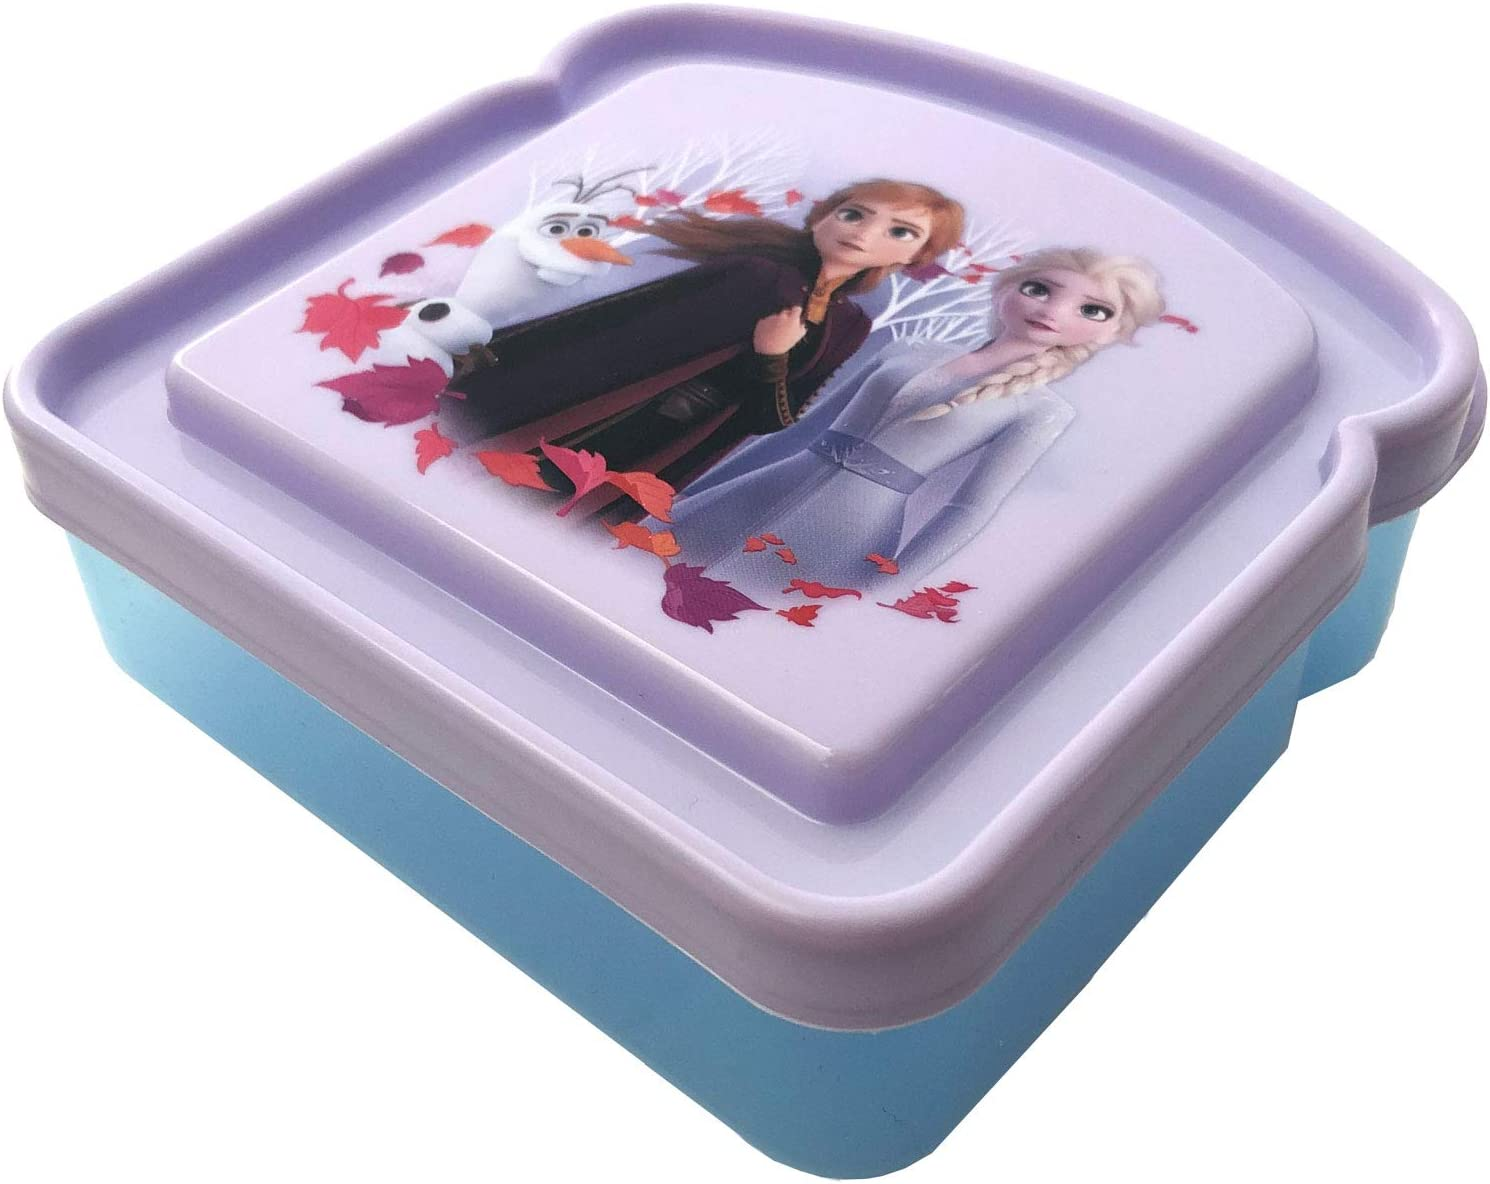 Sandwich Box Compact Food Storage Container | Great for Kid Snacks | BPA Free, Reusable (Frozen)